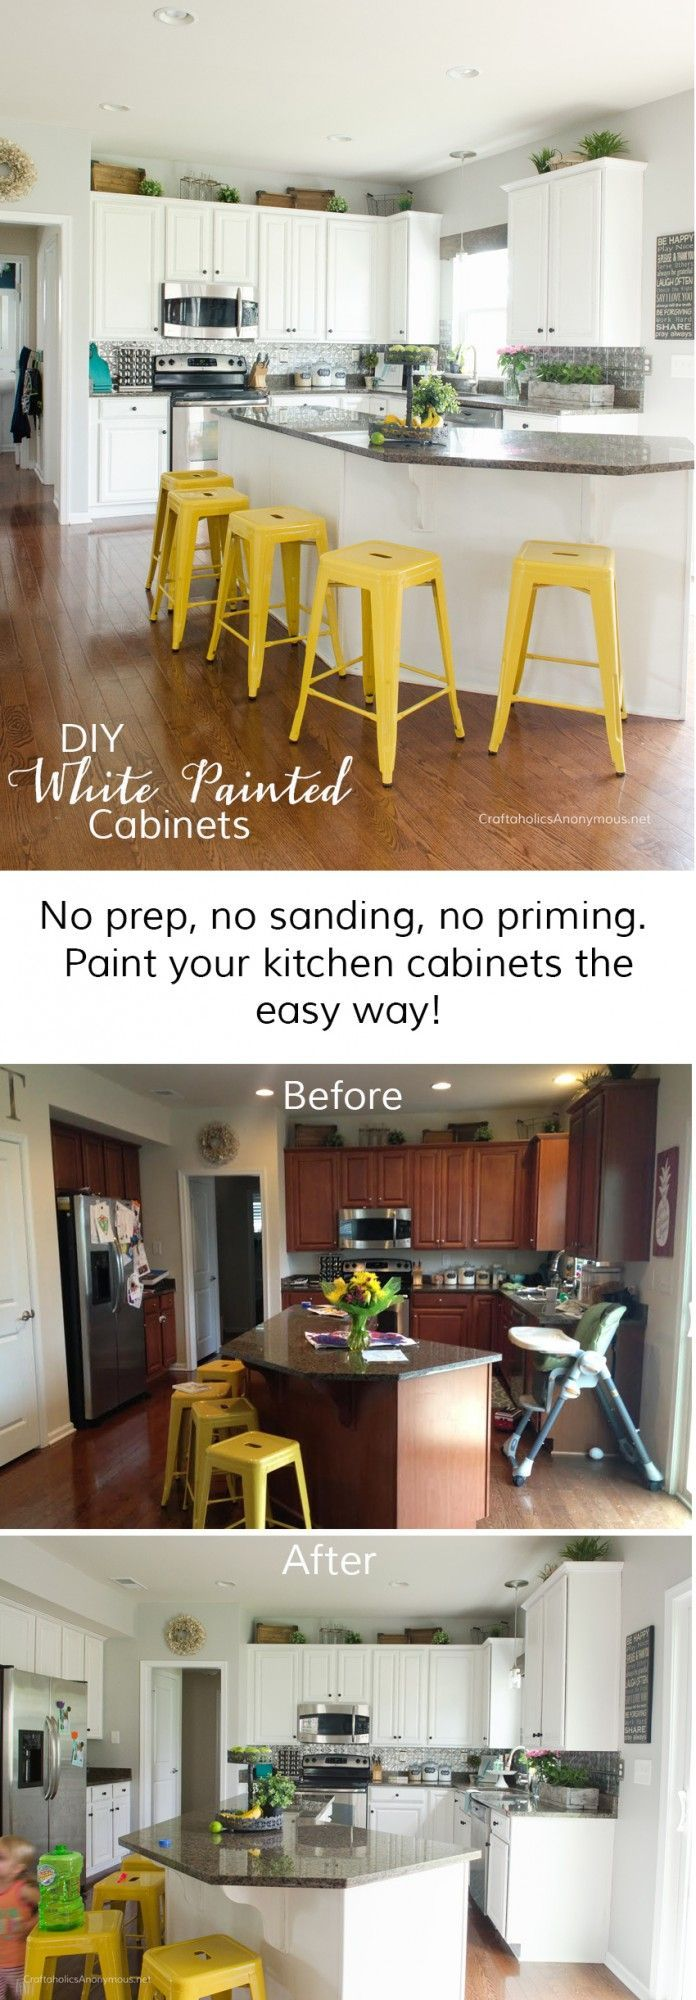 How to paint Kitchen Cabinets white with Chalk Paint || Huge DIY White Kitchen Cabinet makeover that requires no prep. A must read if you want to paint your kitchen cabinets white.